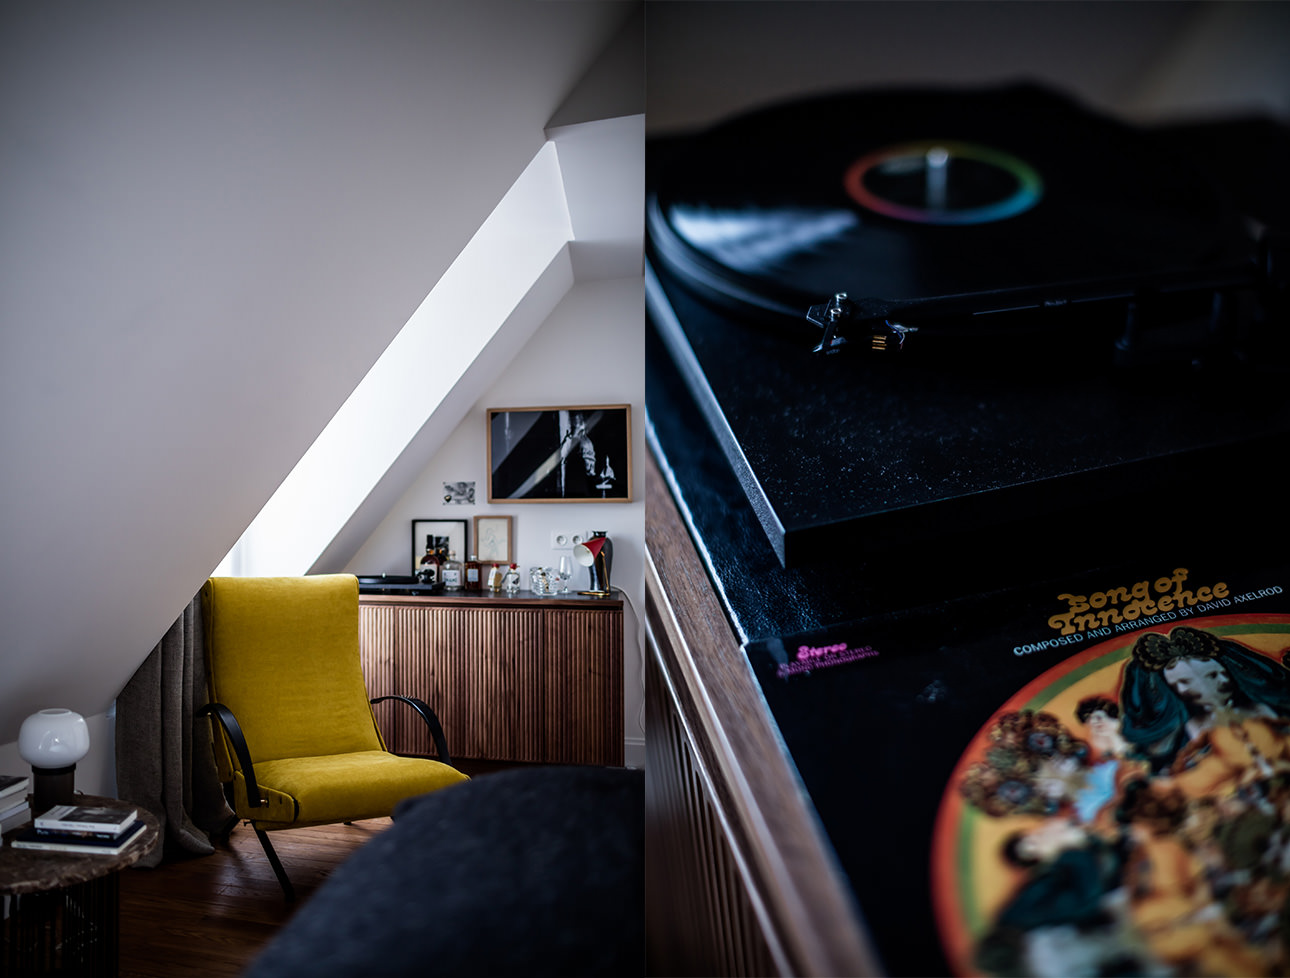 le-pigalle-hotel-suite-midcentury-decor-turntable-vinyl-records